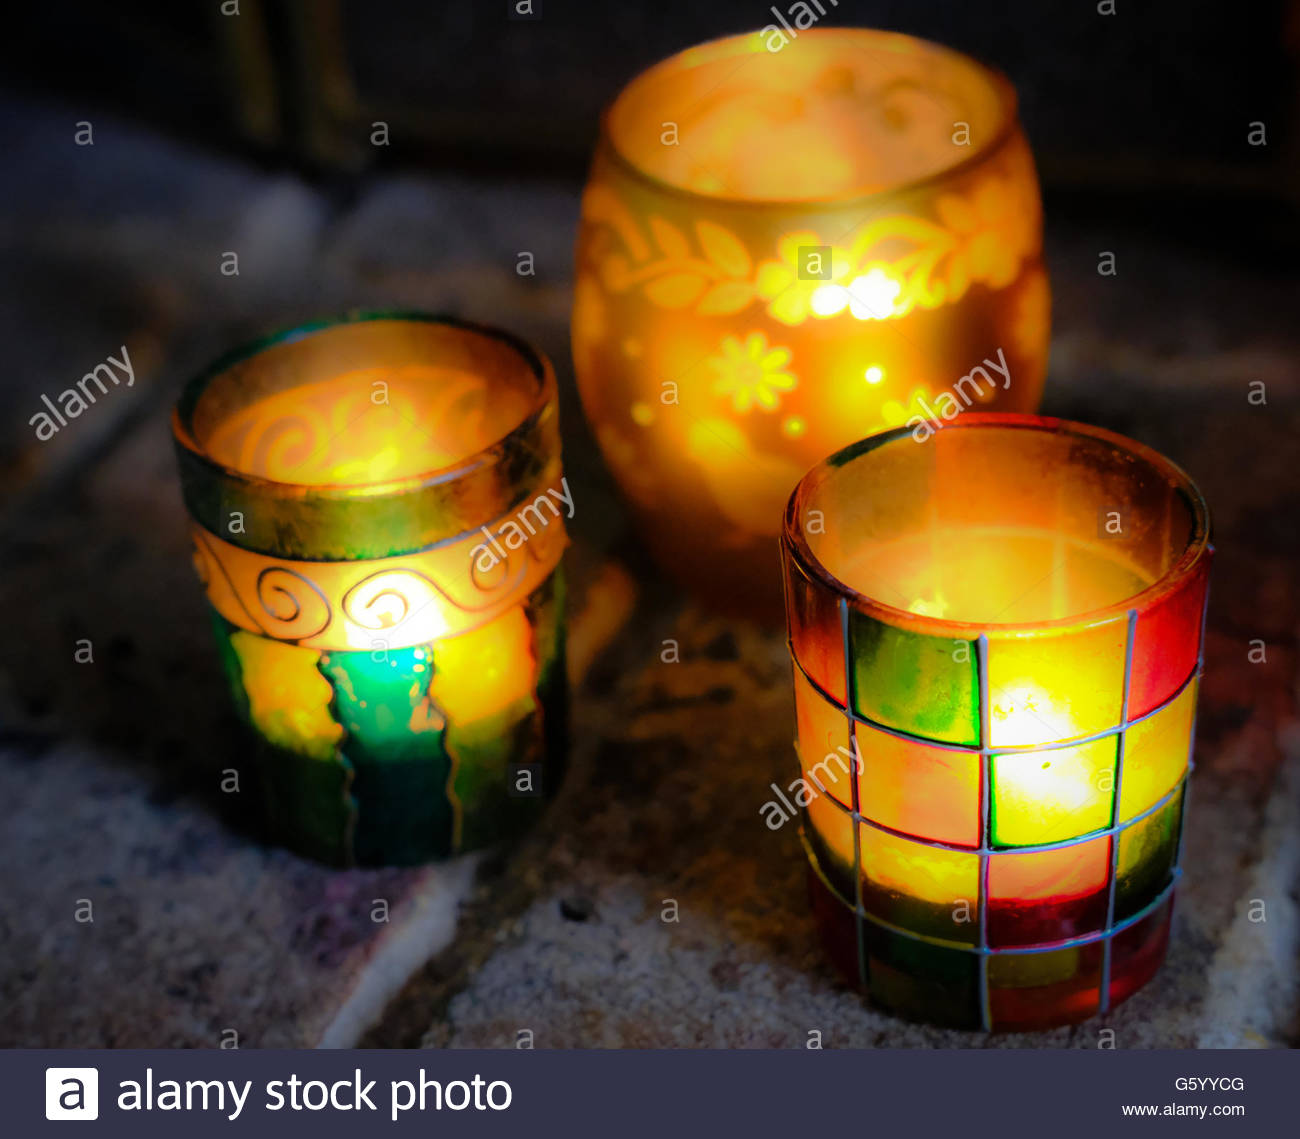 Festive, coloured glass jar lanterns as seen with lit tea lights in a fireplace setting. - Stock Image